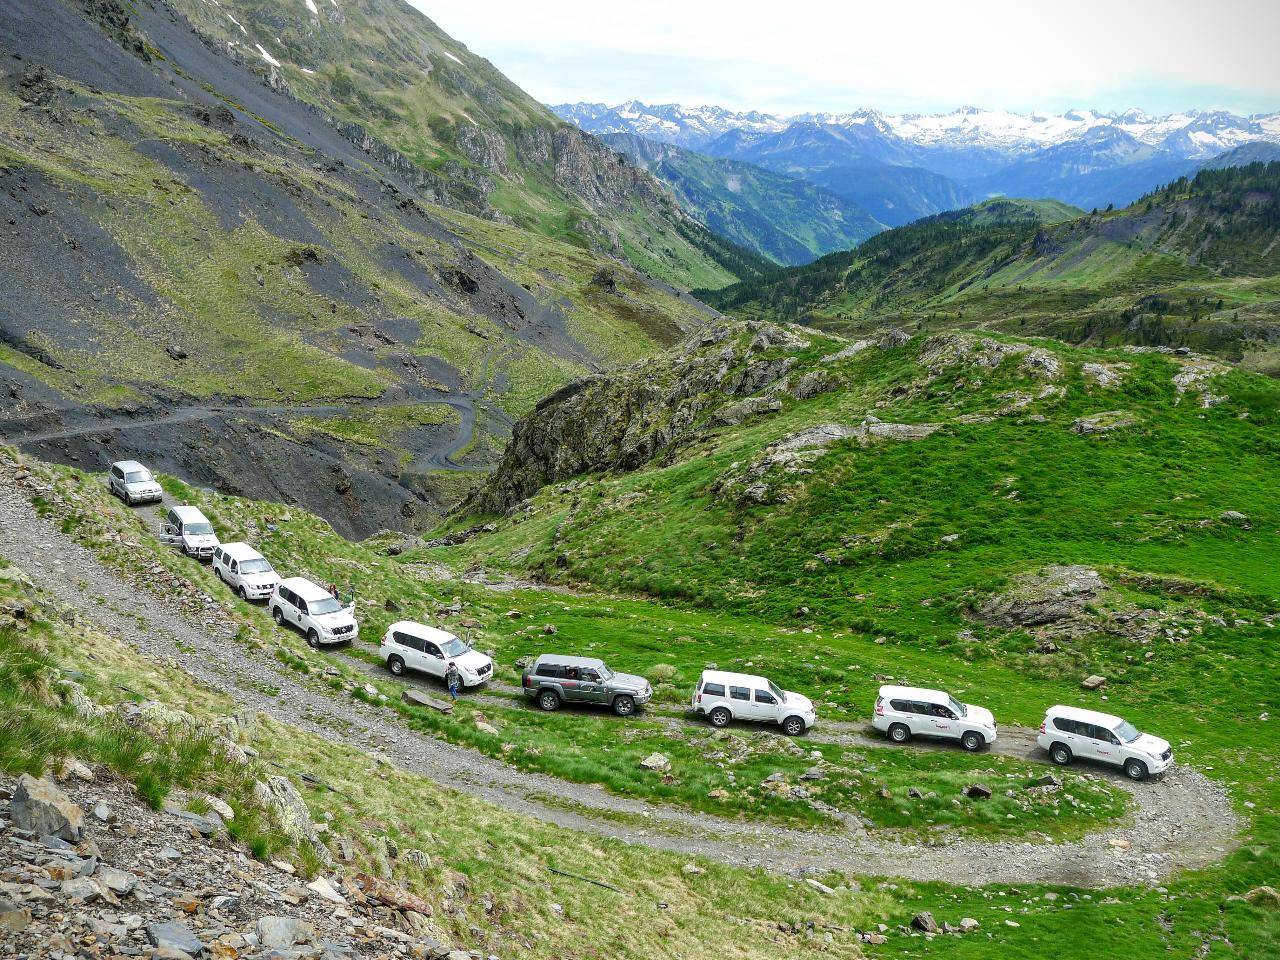 Pyrenees Safari for families  - Five days of nature, adventure and wild landscapes